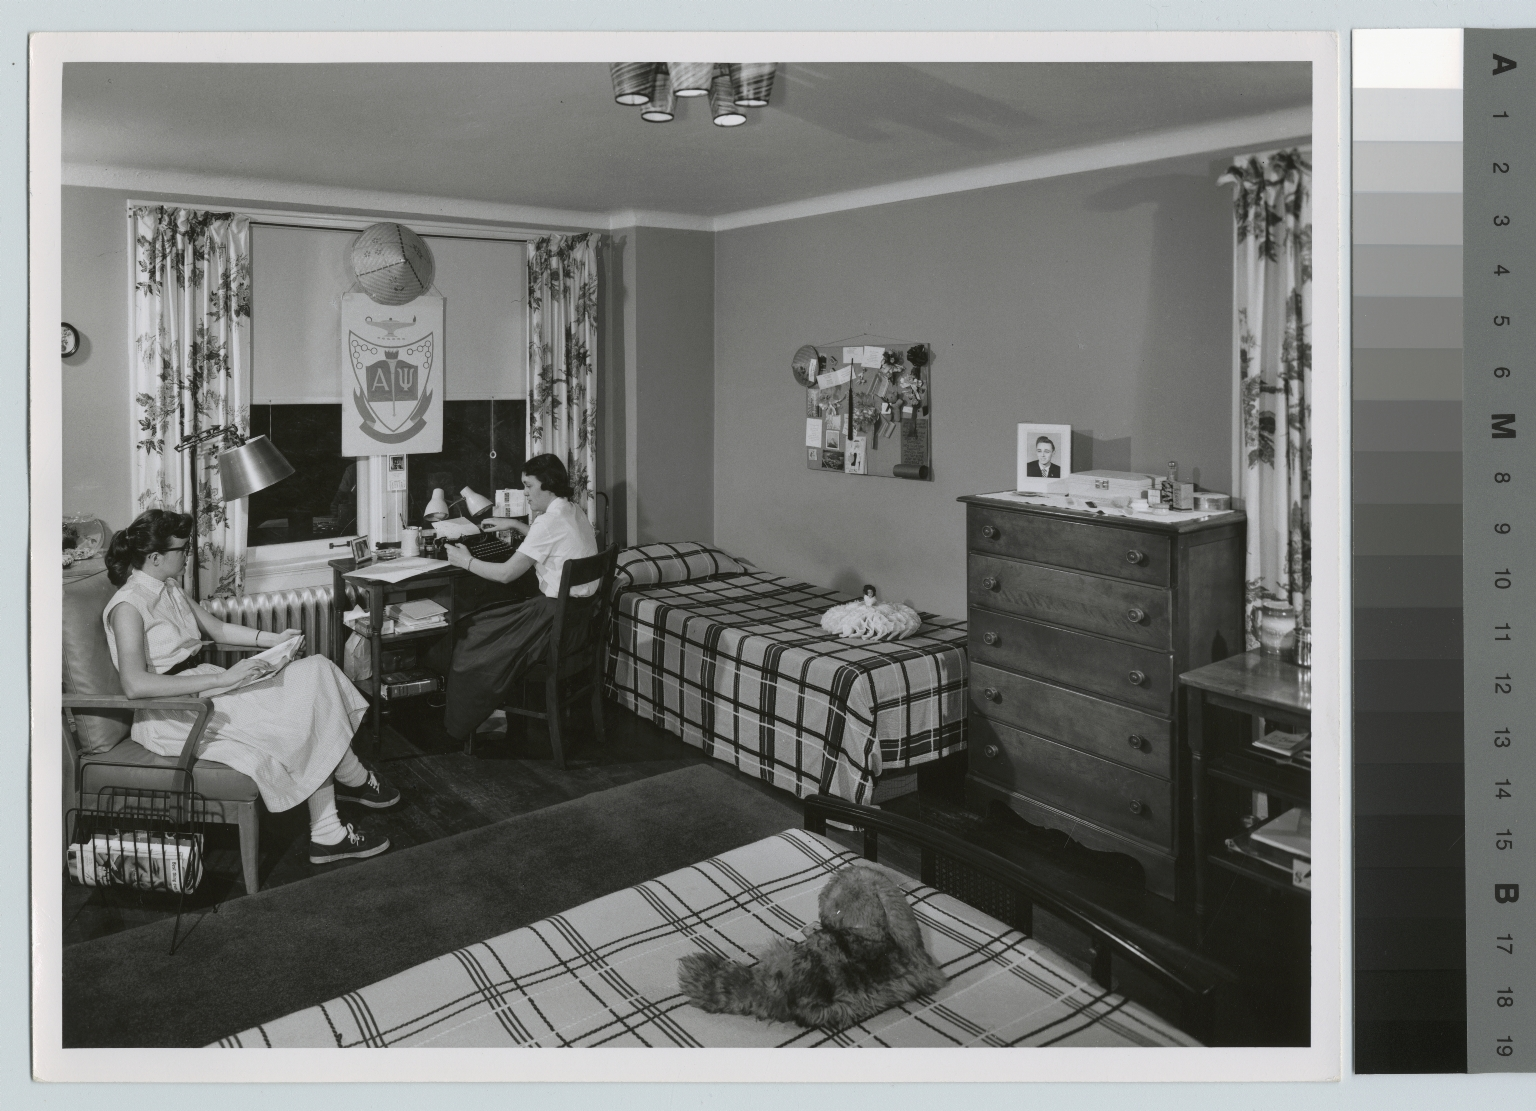 Student activities, two female students in a dorm room at Frances Baker Hall